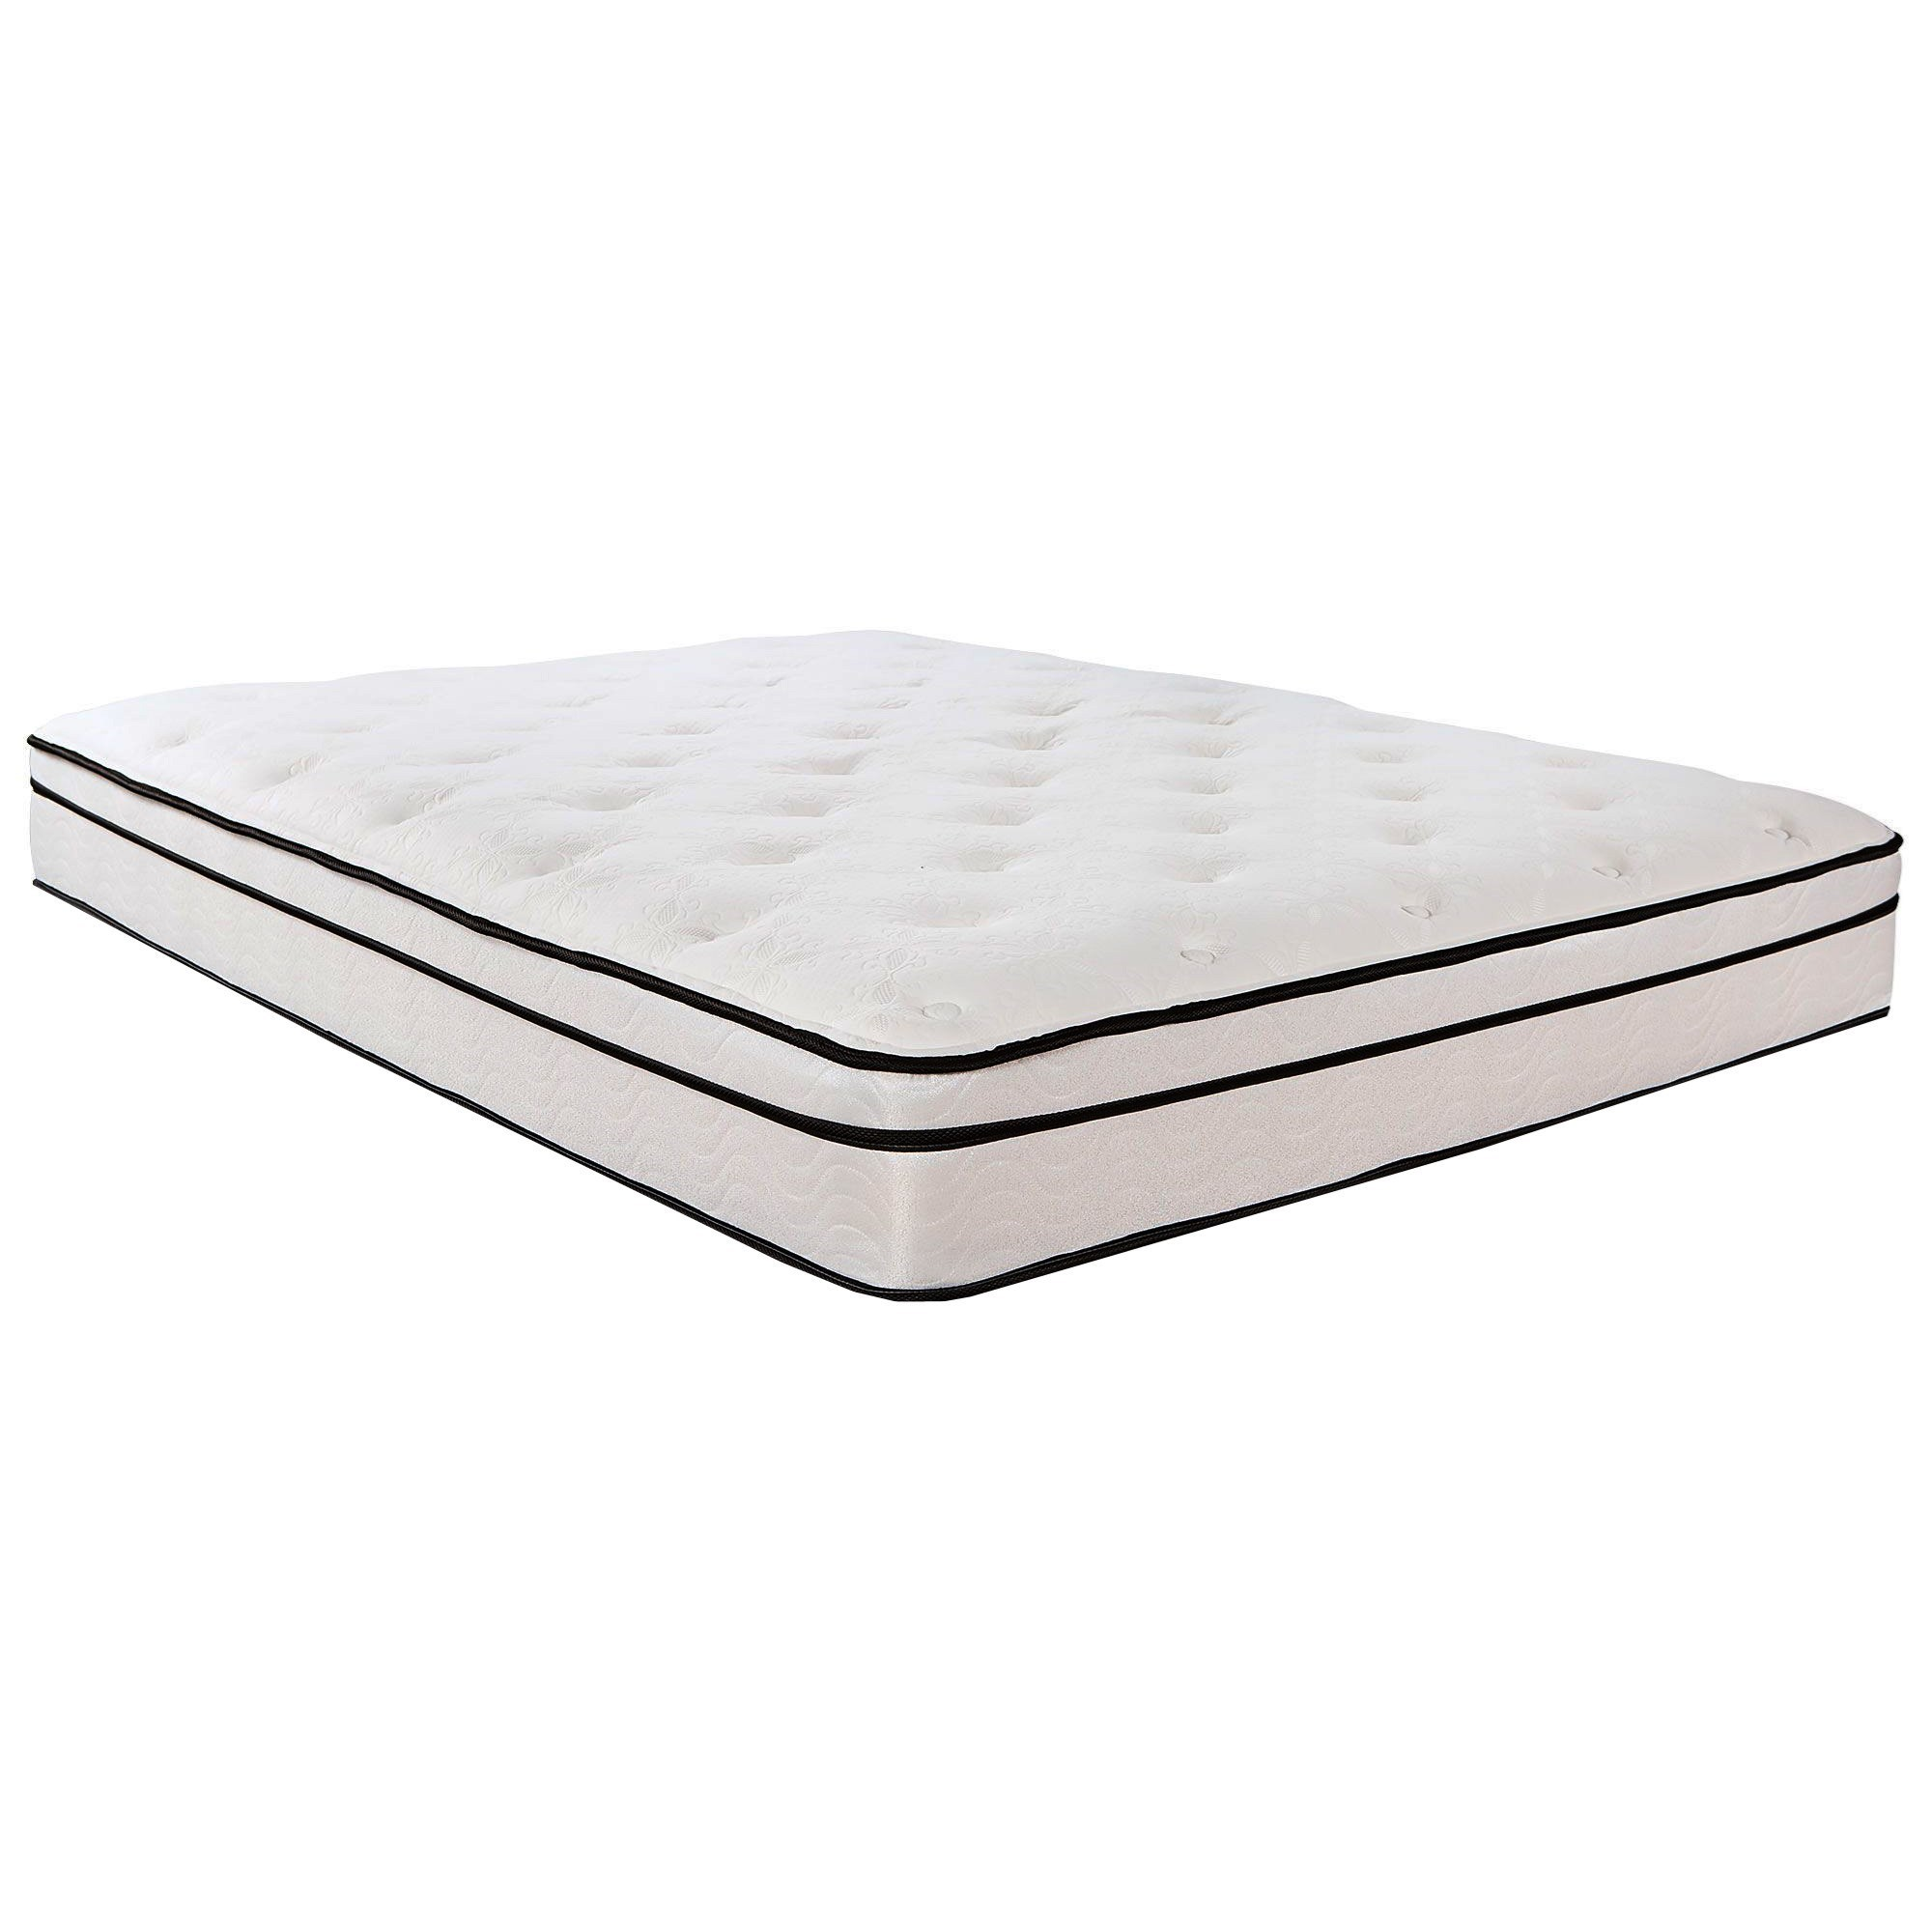 "6500 Euro Top Full 12 1/4"" Innerspring Mattress by Southerland Bedding Co. at Wilcox Furniture"